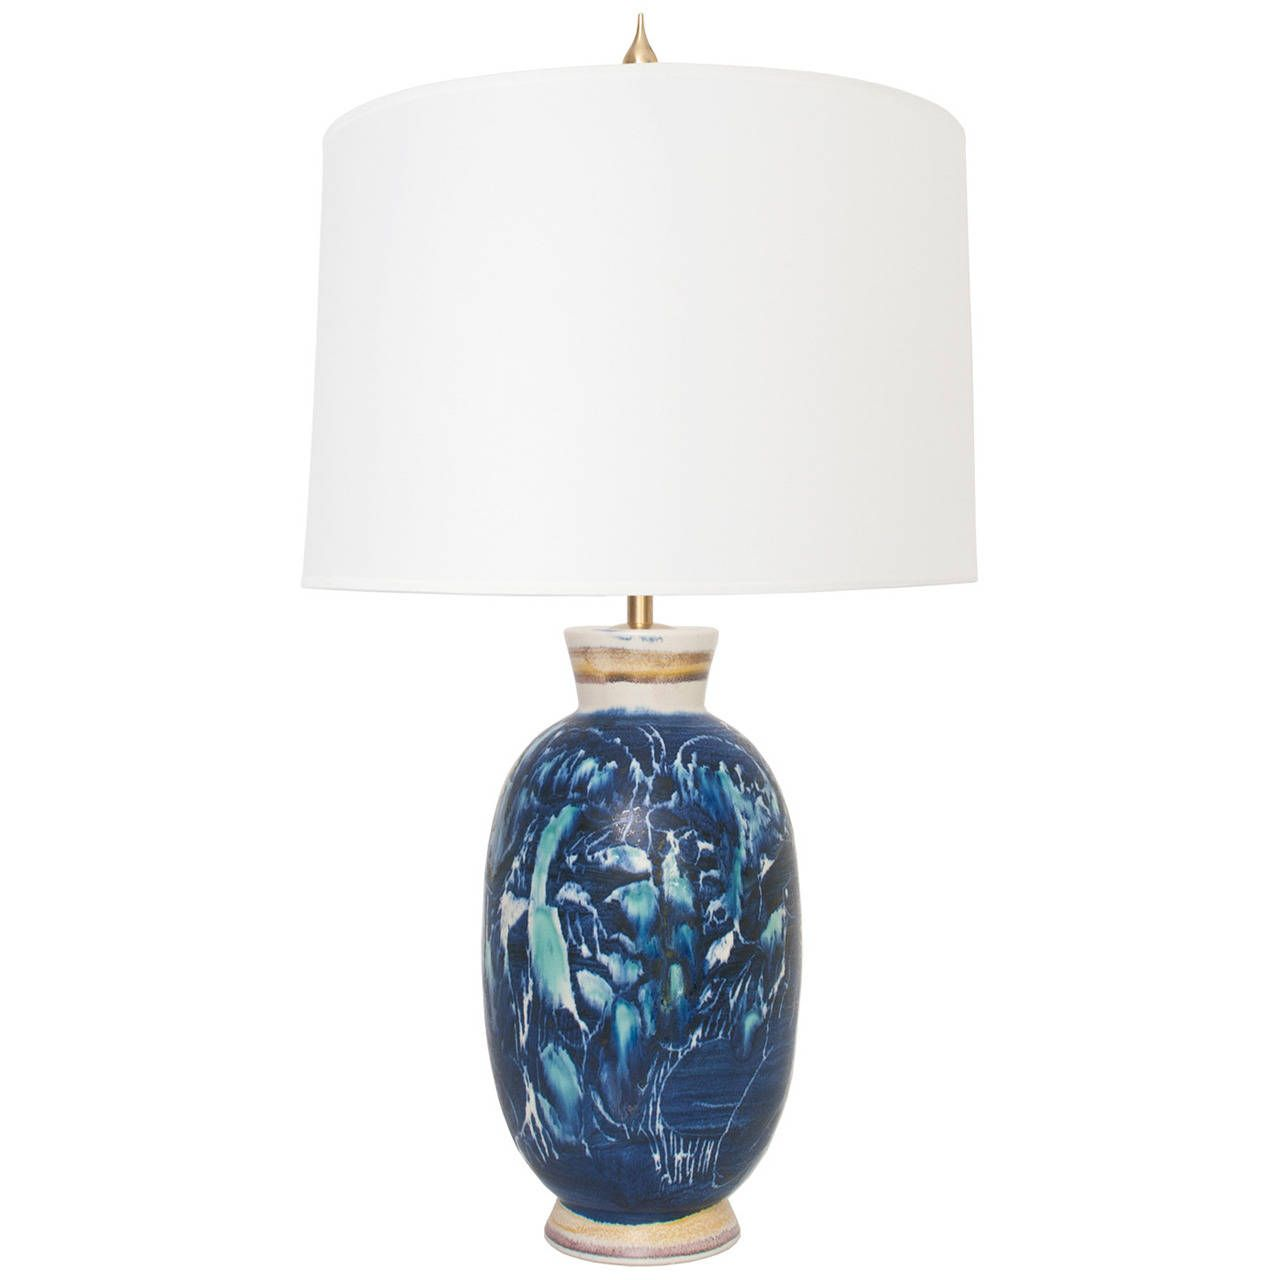 Swedish Unique Ceramic Table Lamp by Carl Harry Stalhane. 1